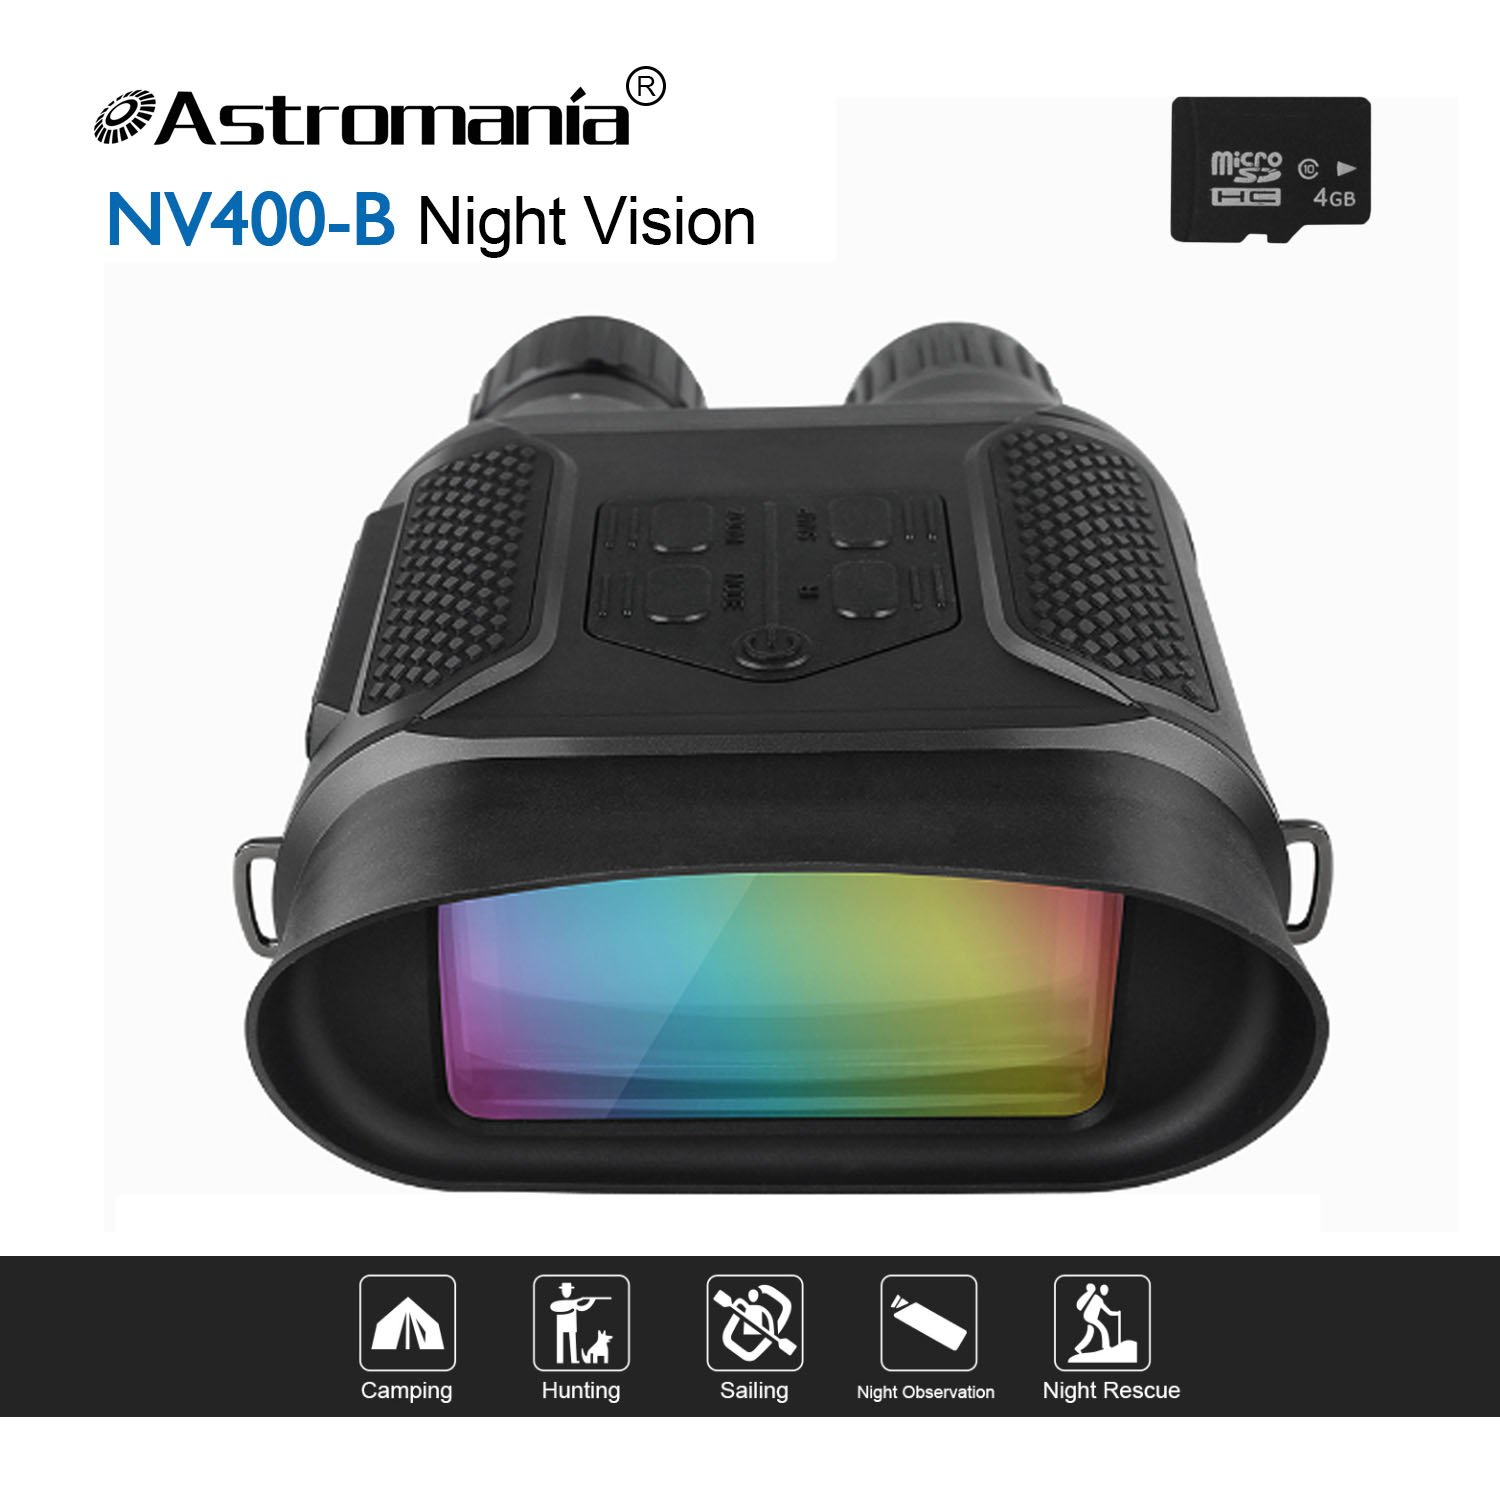 Astromania Night Vision Binocular/Digital Infrared Night Vision Scope - 7x31 Hunting IR Telescope with 2'' TFT LCD in-View,1300ft/400M Viewing Range,640x480p HD Photo Camera Video Recorder Display by Astromania